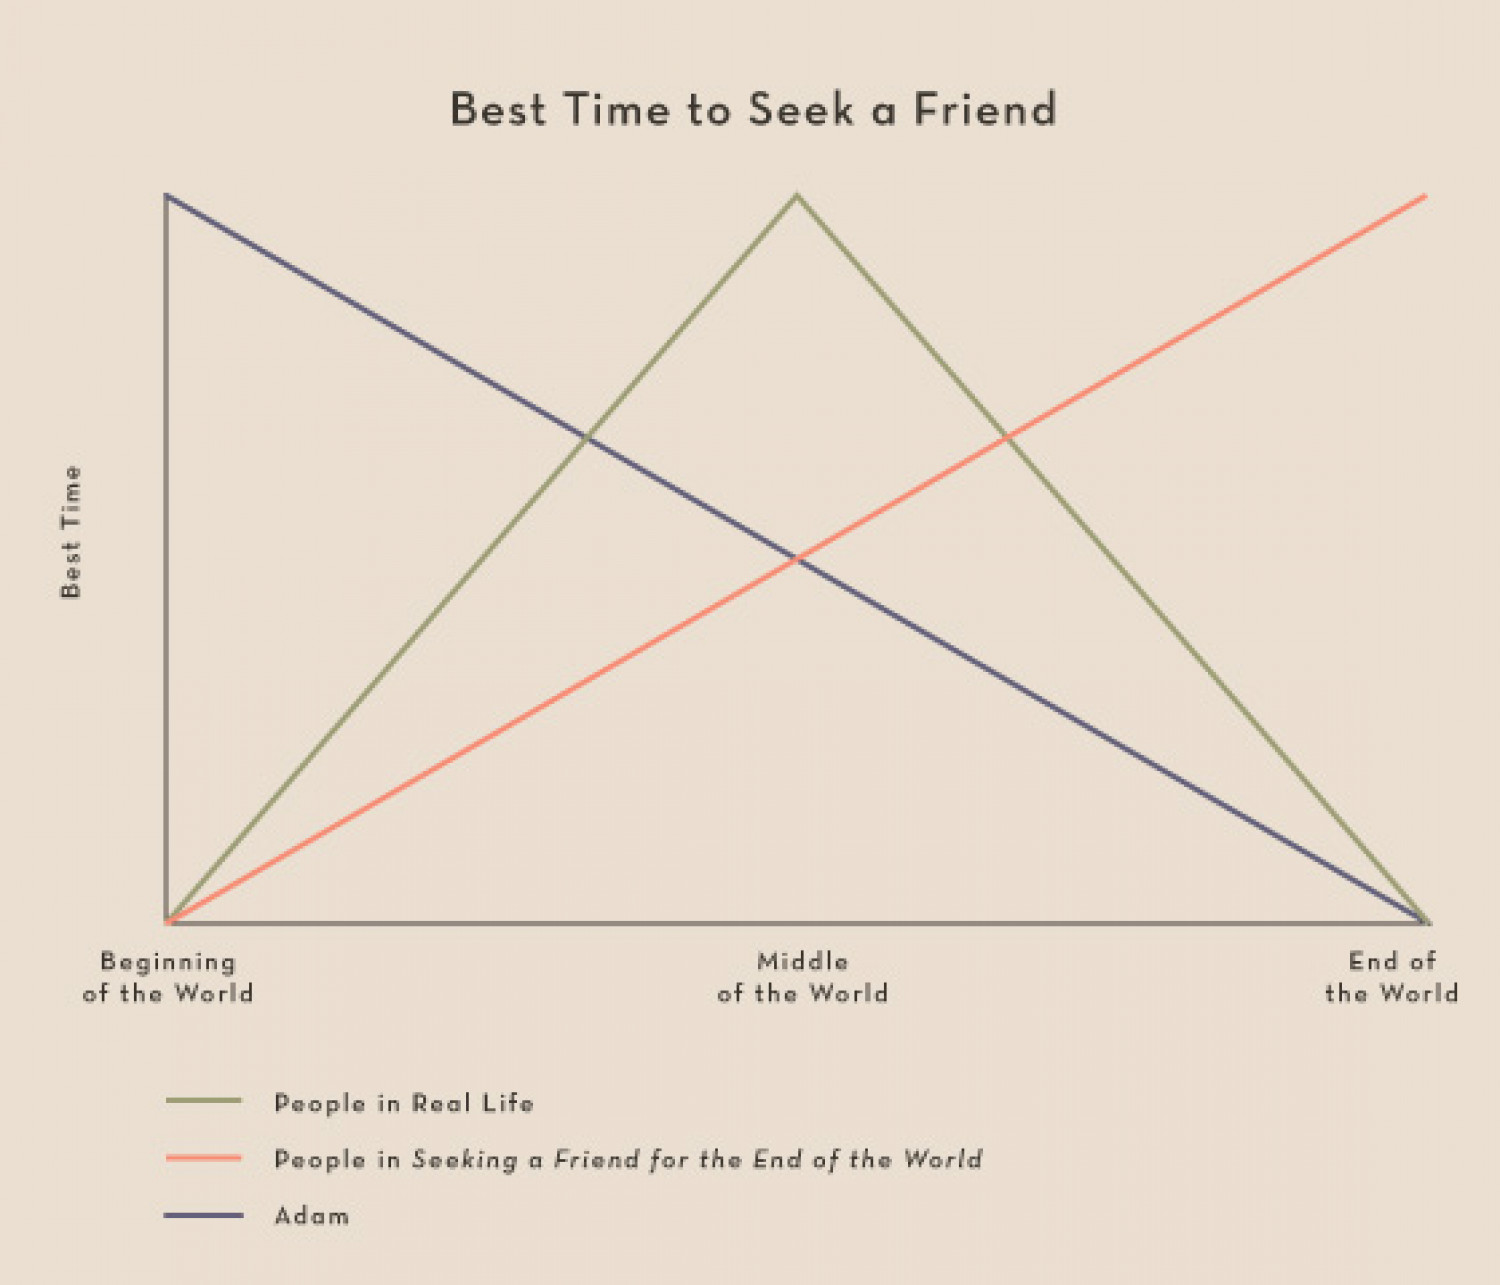 The Best Time to Seek a Friend Infographic